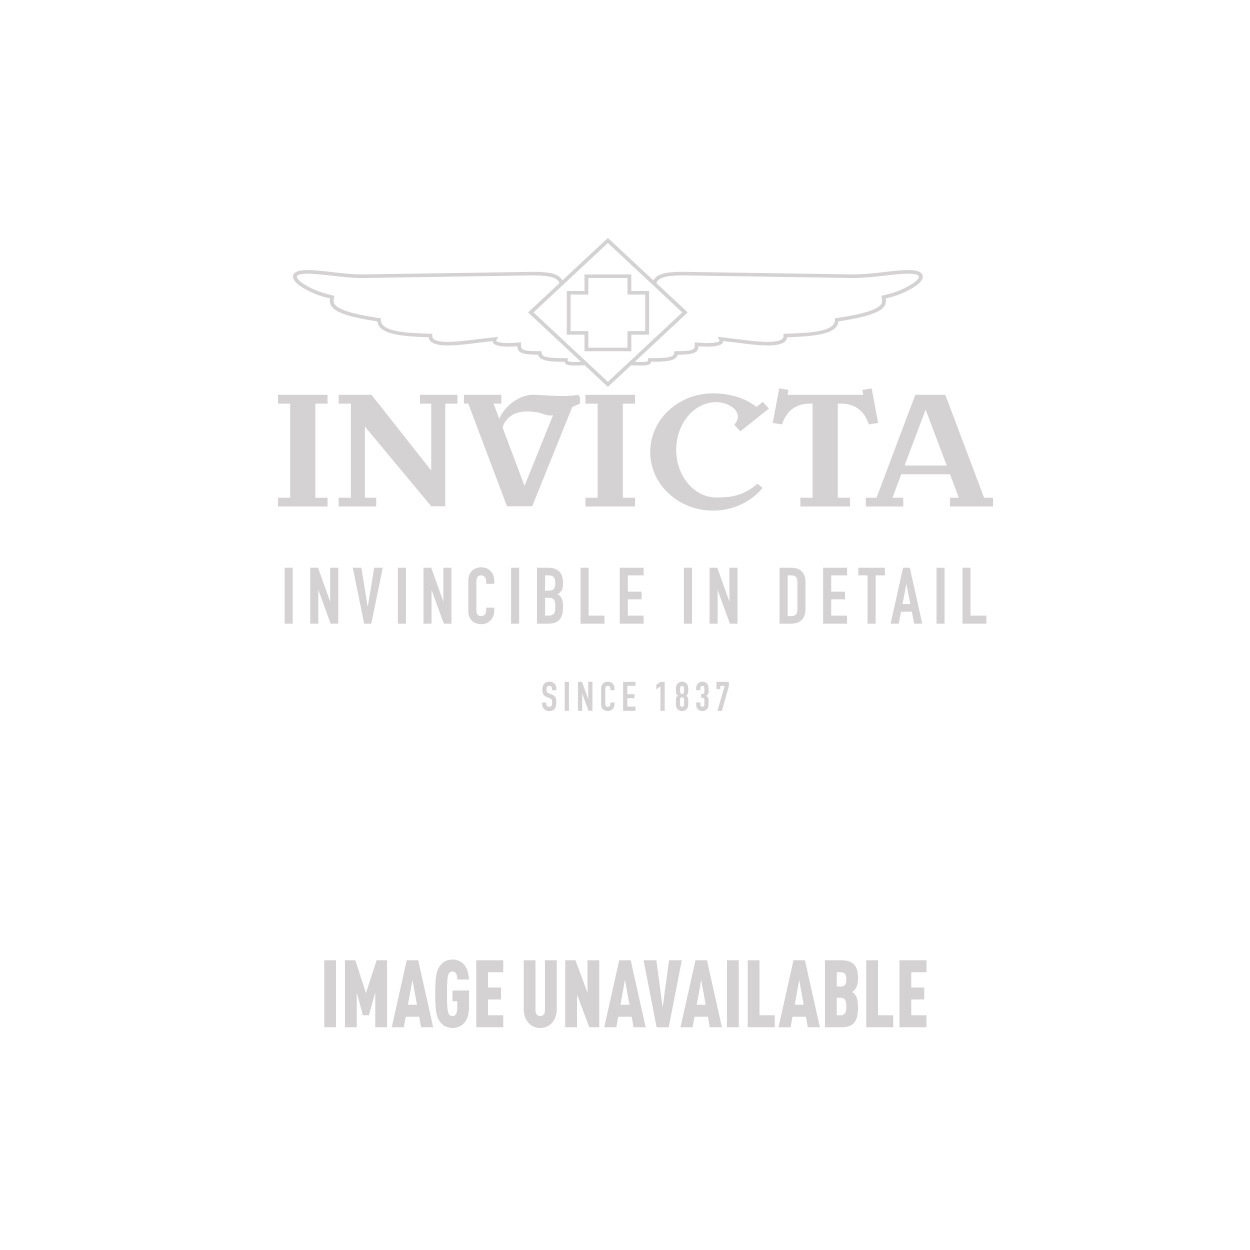 Invicta I-Force Swiss Movement Quartz Watch - Stainless Steel case with Black tone Leather band - Model 13008